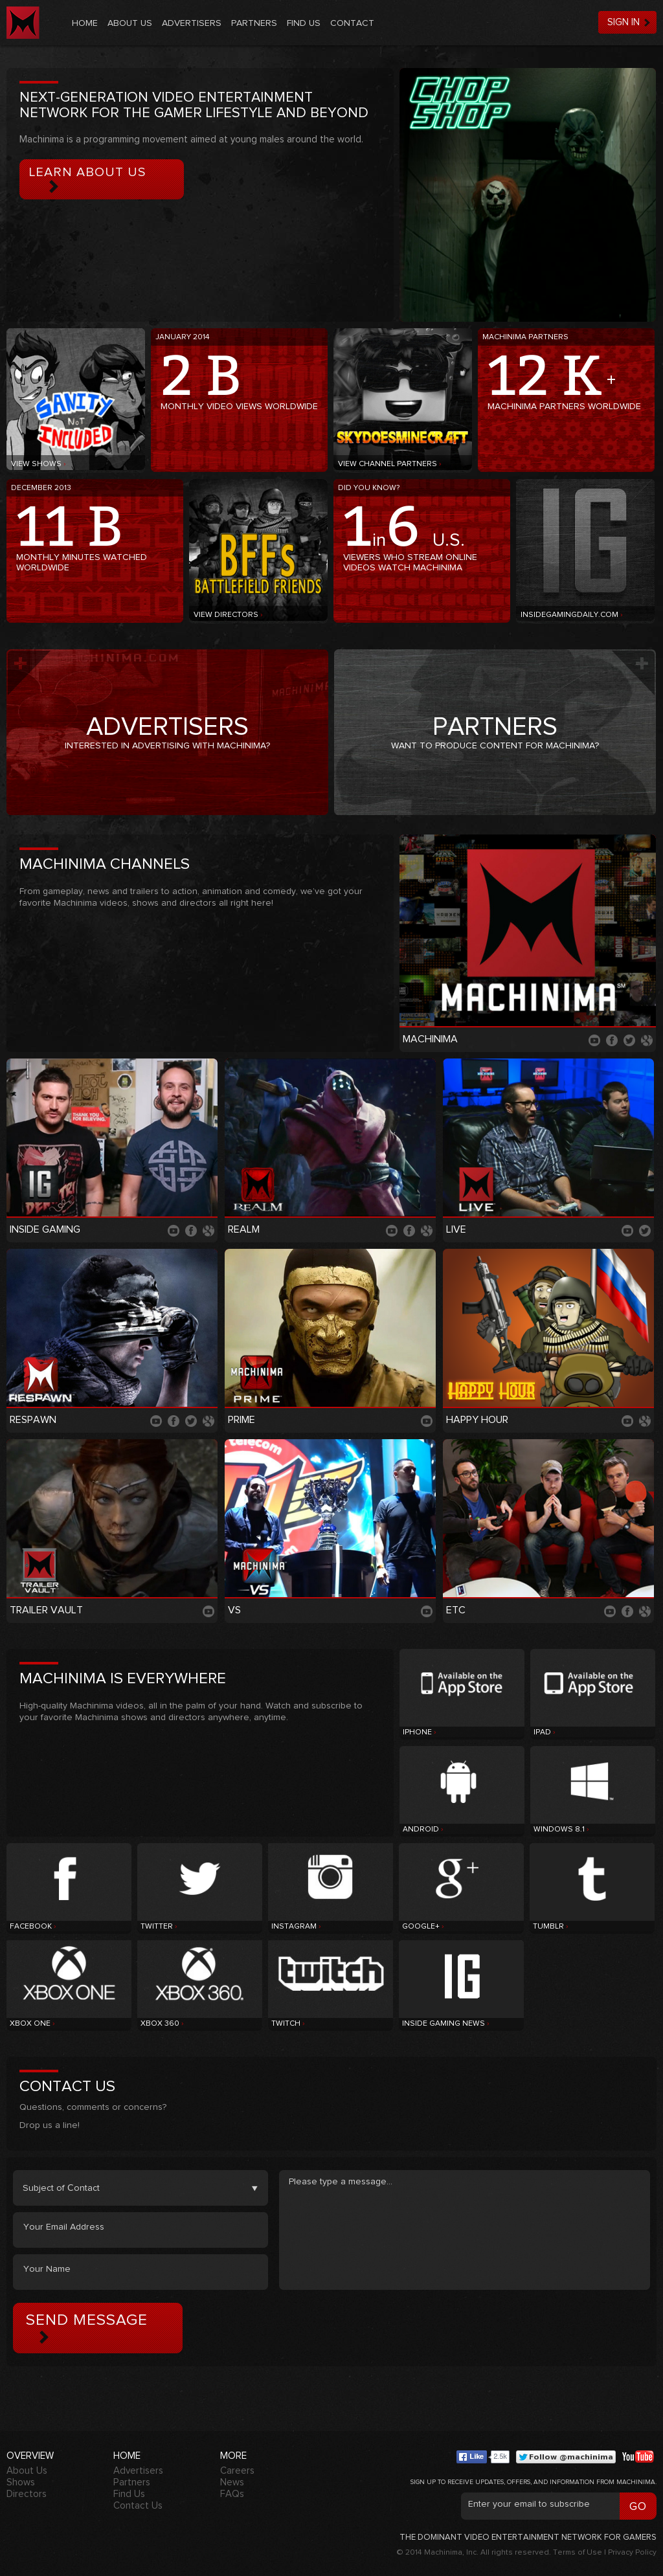 Machinima Competitors, Revenue and Employees - Owler Company